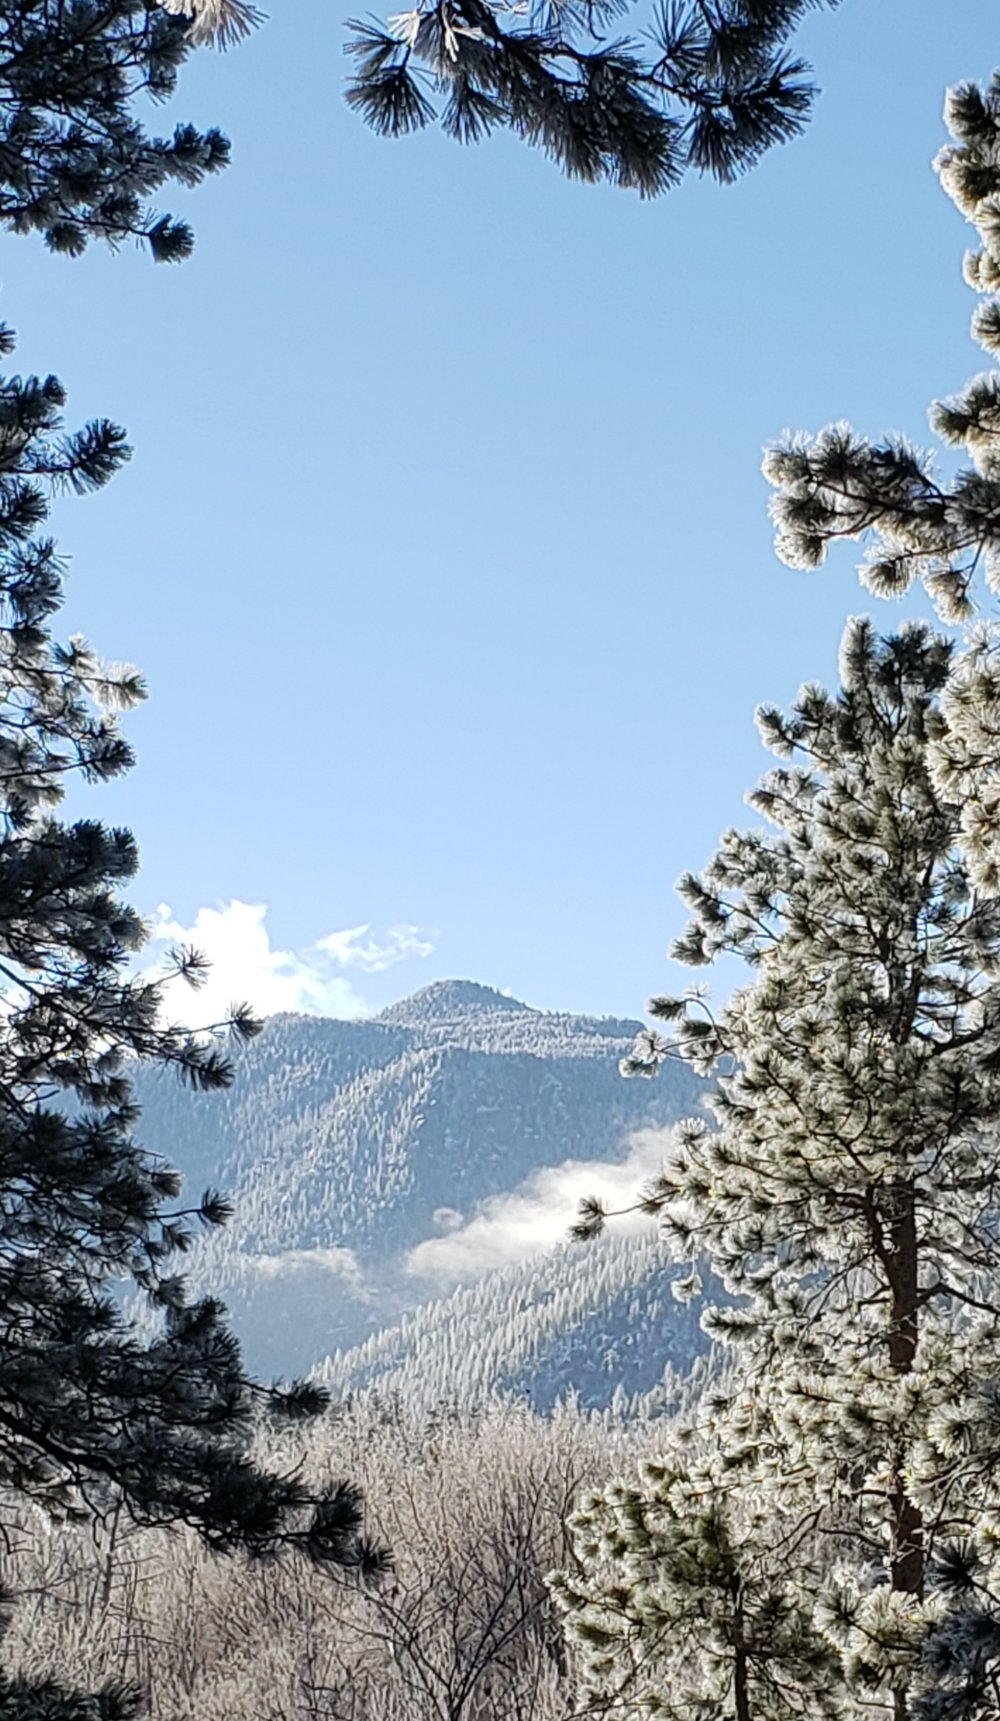 Snow capped mtns framed by trees 2018.jpg